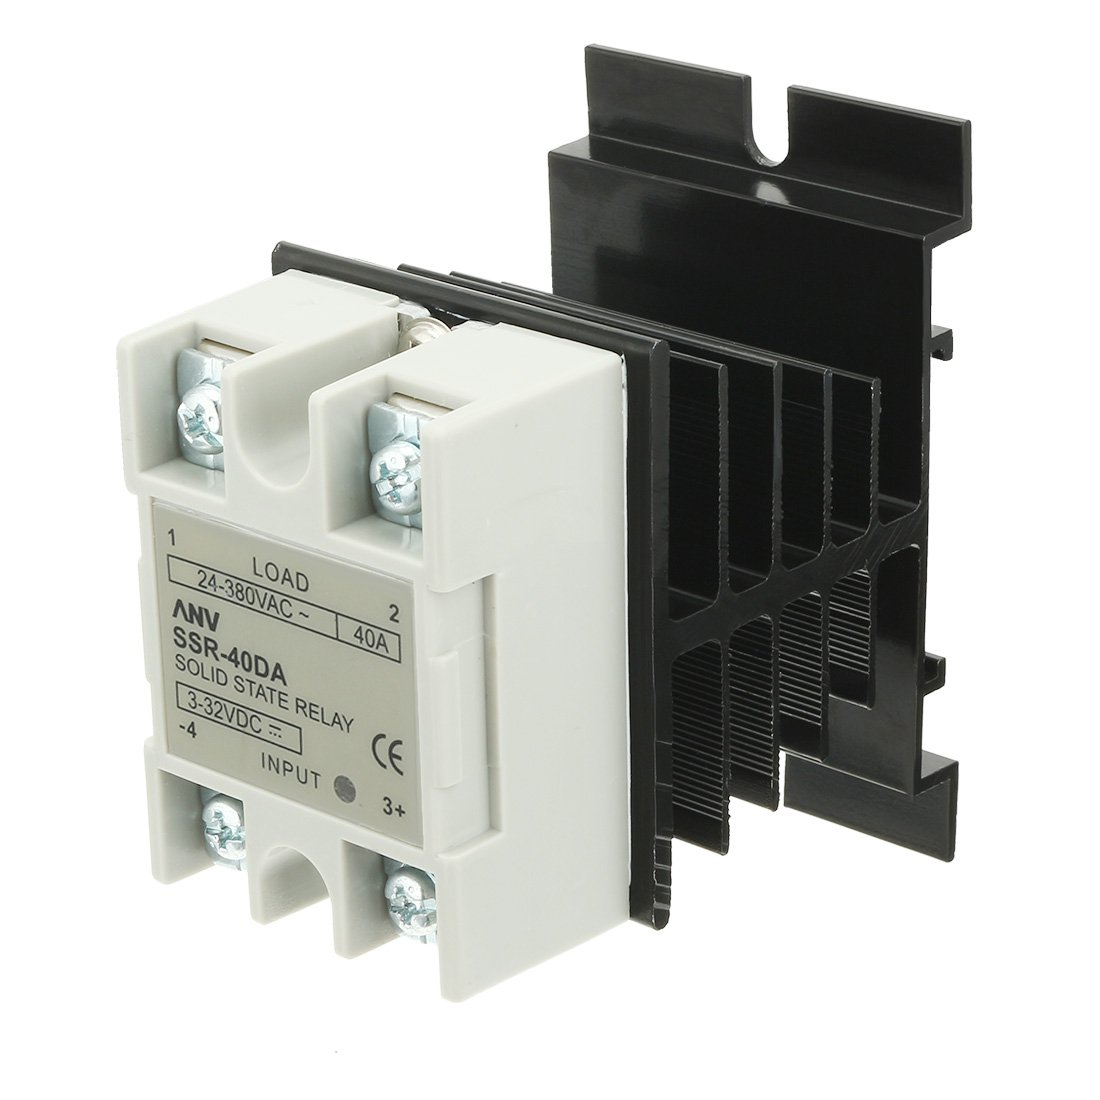 Cheap Ssr 40da Solid State Relay Find Arduino Ac Get Quotations Uxcell 40 Da 40a Dc 32 32v To 24 380v